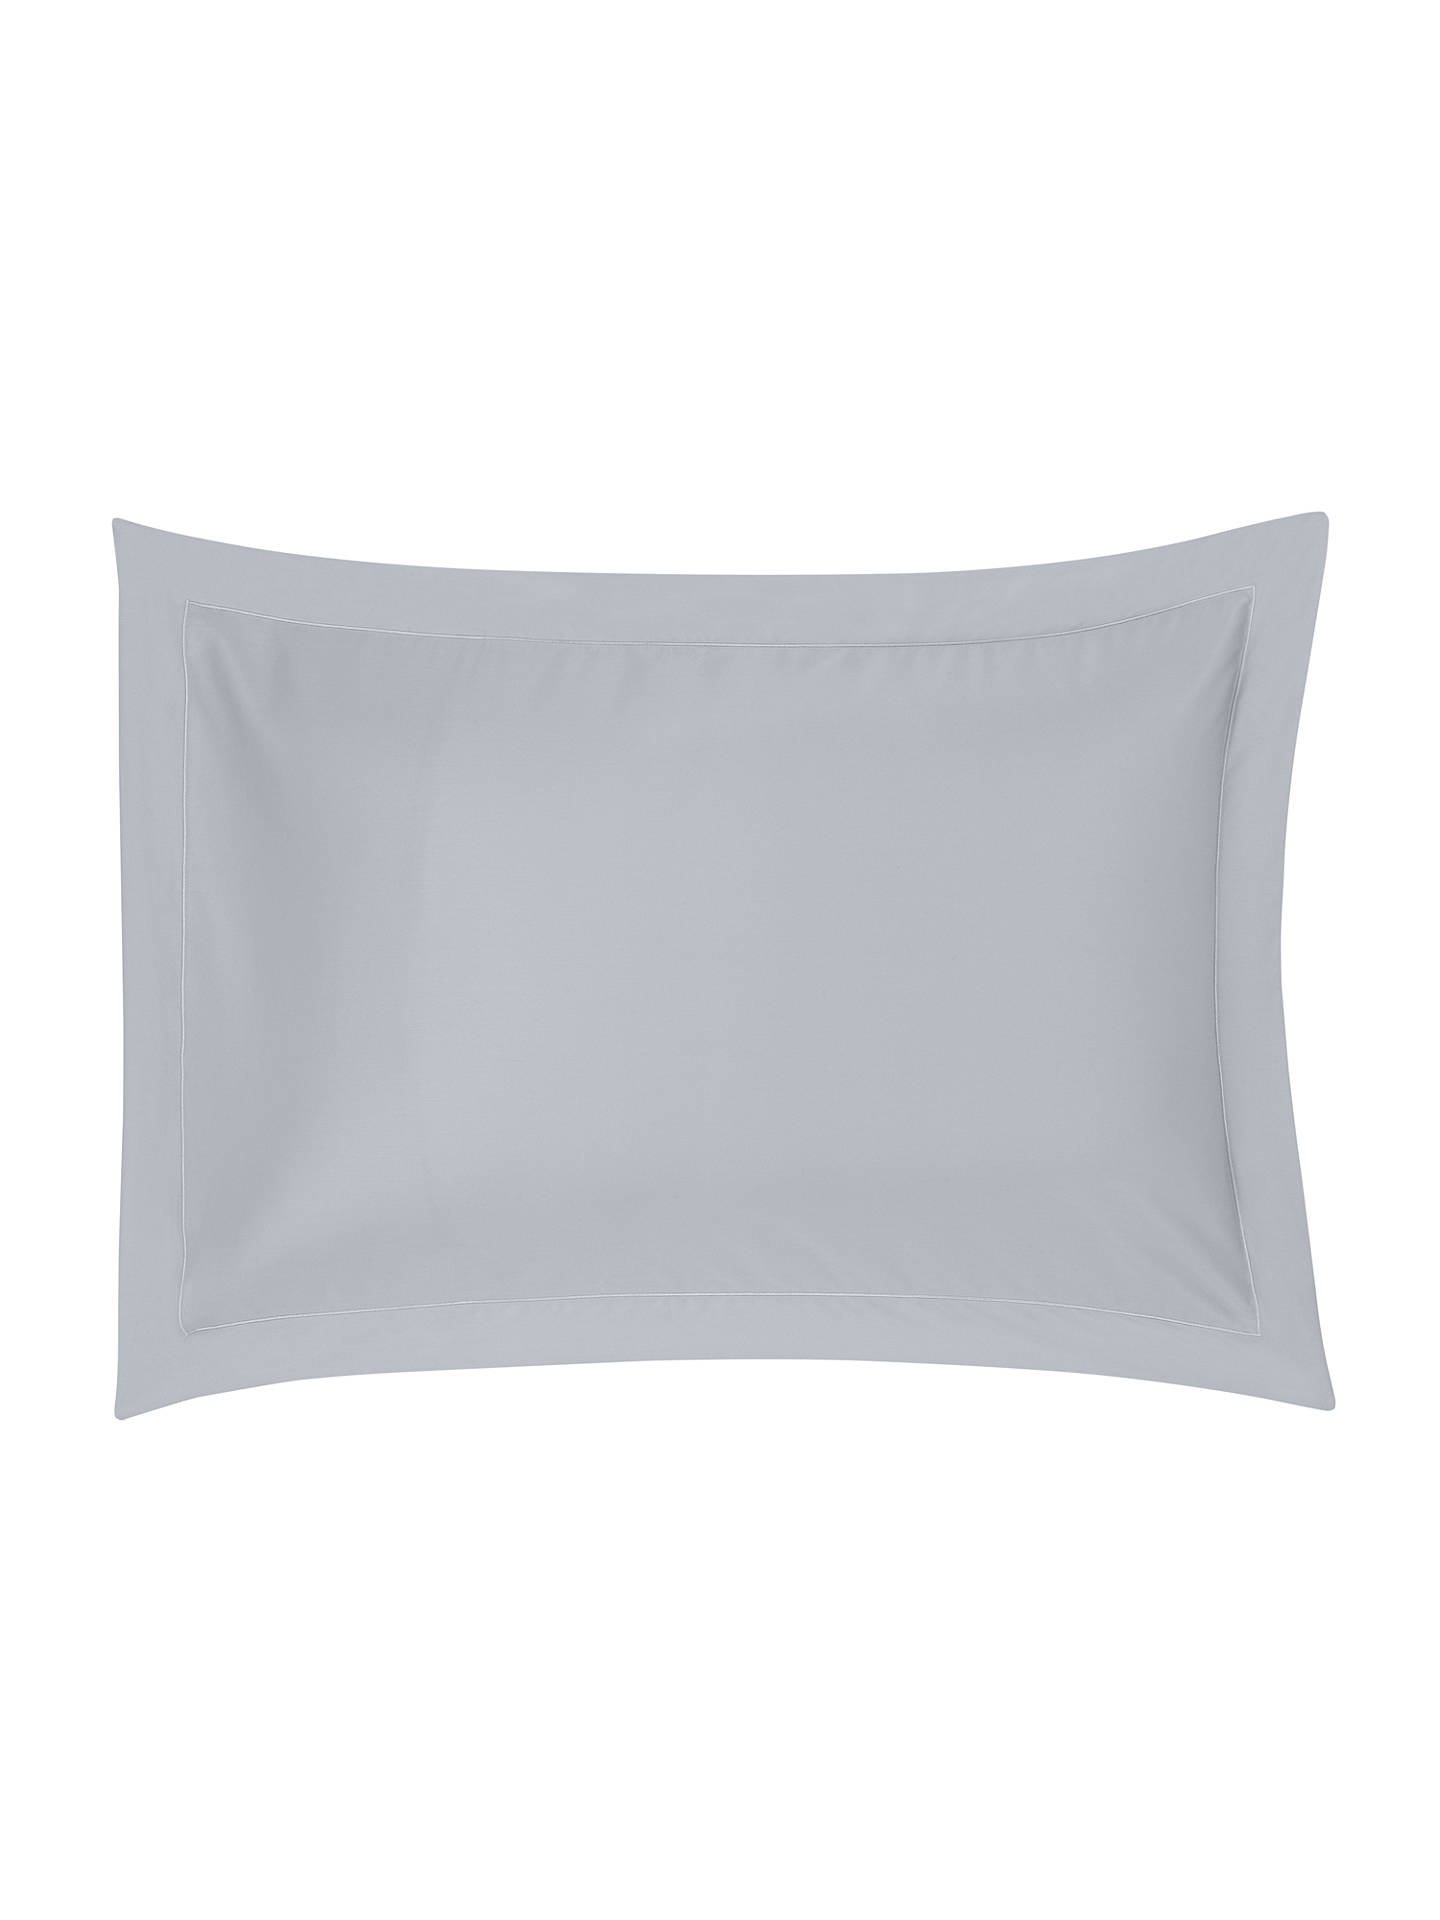 BuyJohn Lewis & Partners Soft & Silky Egyptian Cotton 800 Thread Count Standard Pillowcase, Cool Grey Online at johnlewis.com